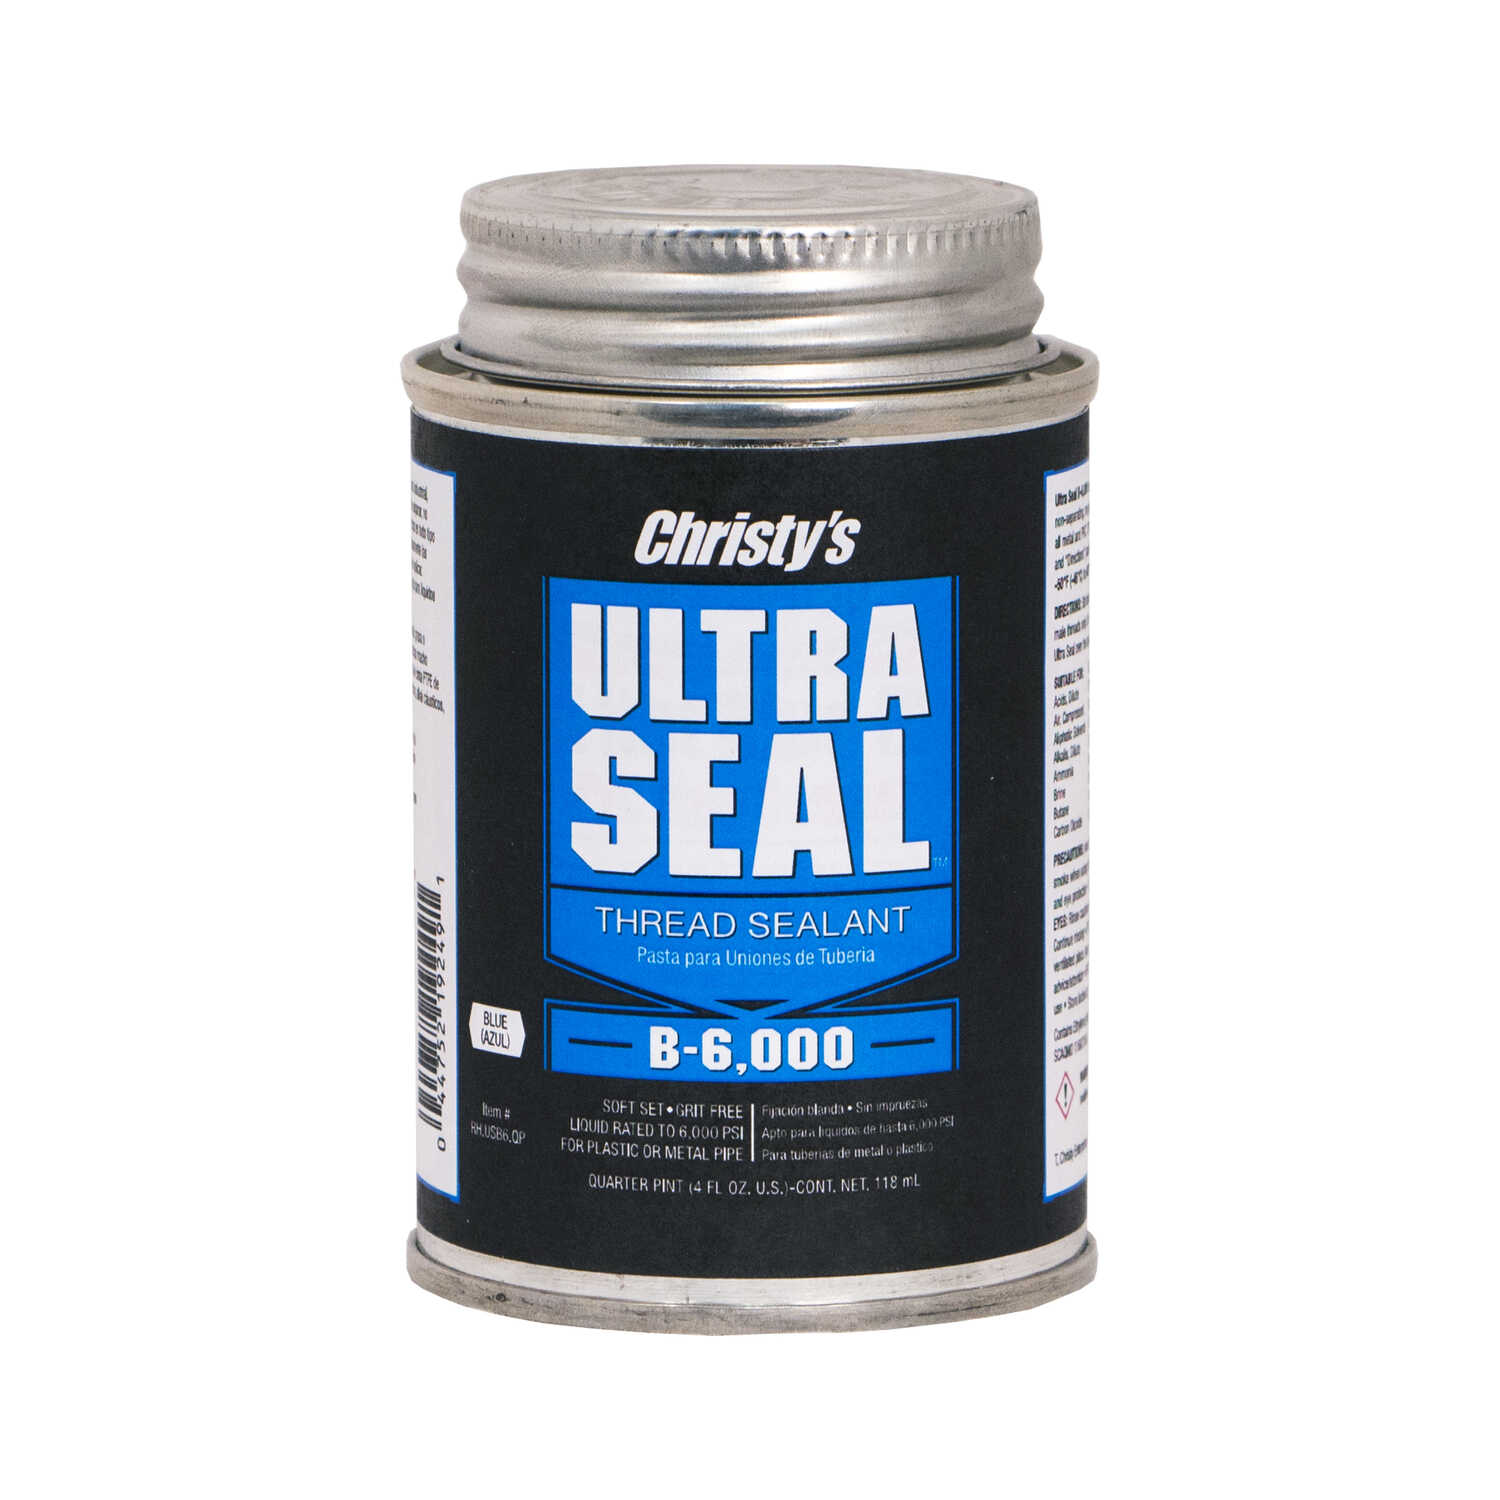 Christys  Ultra Seal  Blue  Blue  Thread Sealant  4 oz. 4 oz. For CPVC/PVC